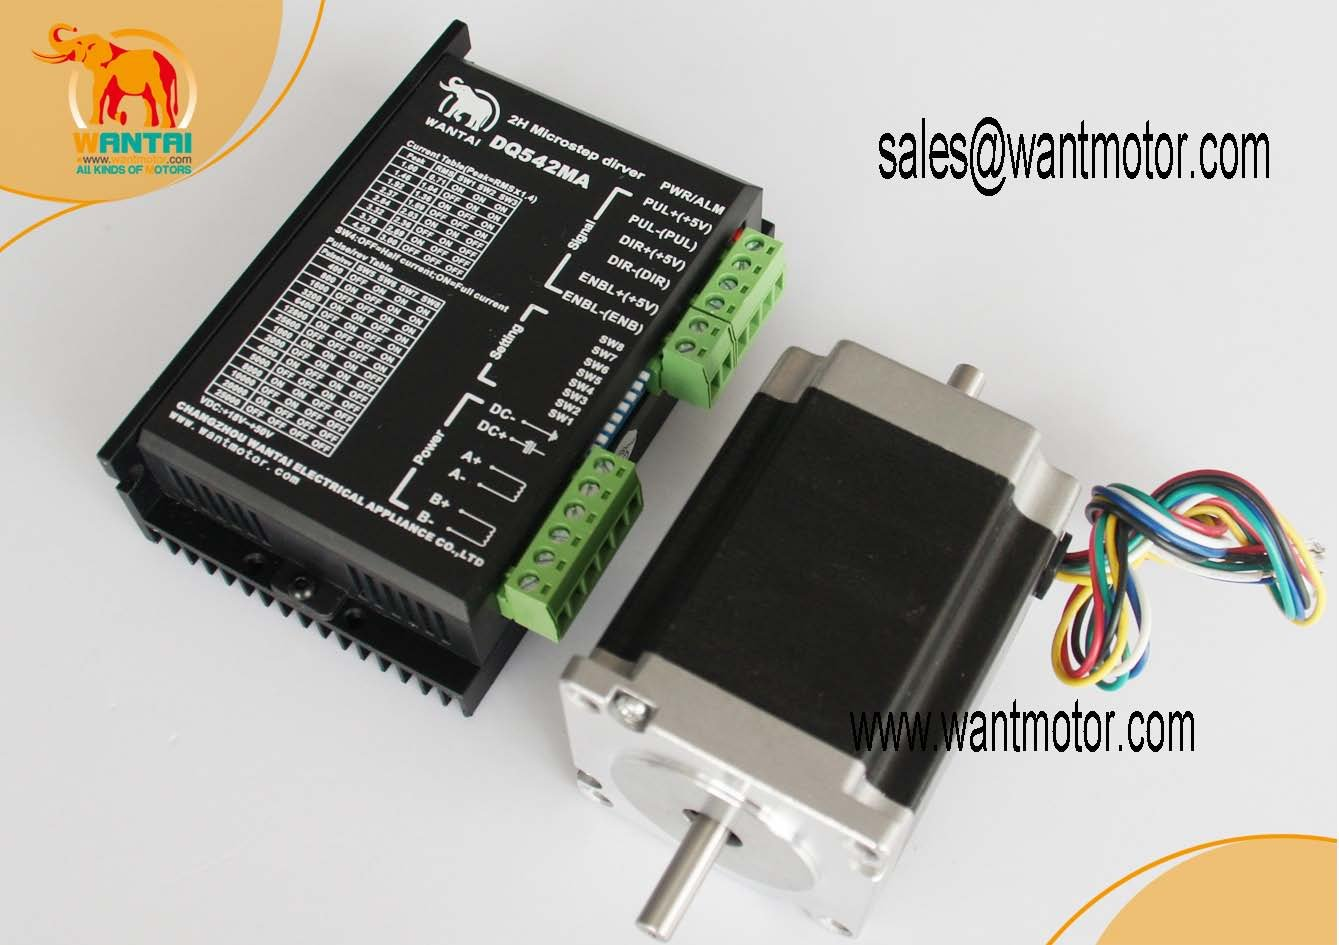 Dual Shaft 6 LEADS CNC Mill Nema23 Stepper Motor 270OZ-In ,3.0A,57BYGH633 Control DQ542MA with 4.2A/50V/125Microstep Kit<br><br>Aliexpress